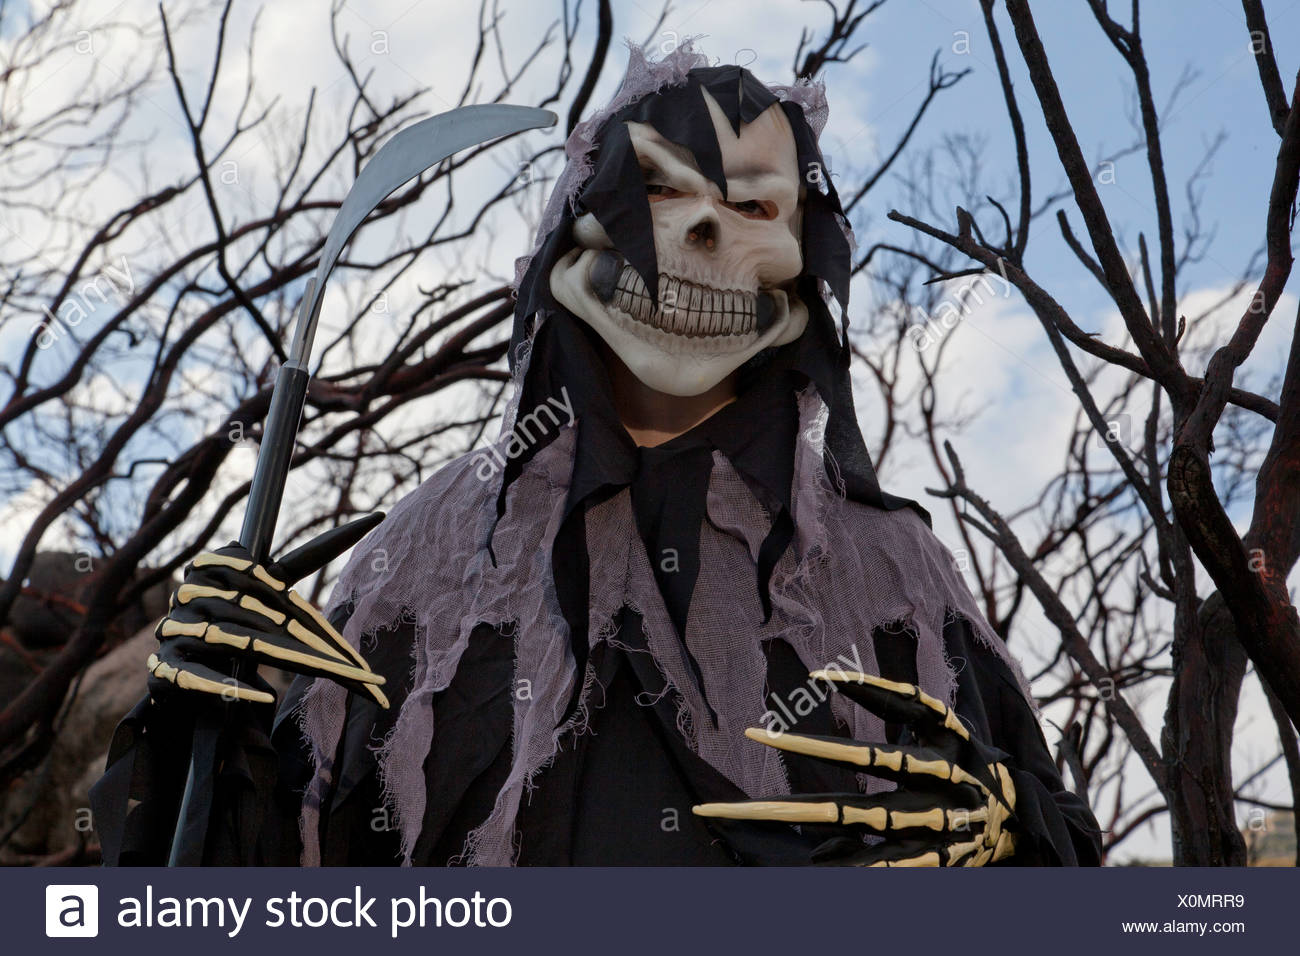 Low angle view of boy dressed up as grim reaper holding spade - Stock Image